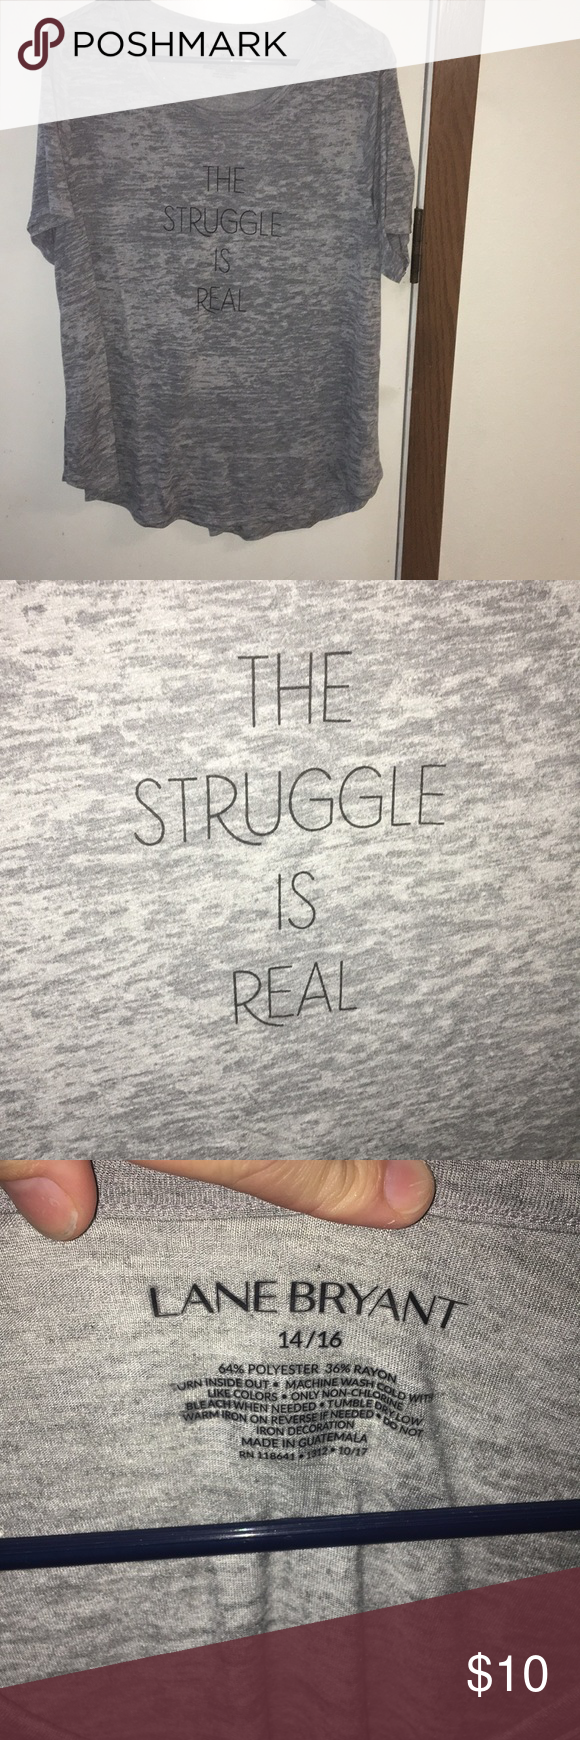 "6ac022e42 Lane Bryant T-Shirt Graphic burnout tee. ""The Struggle is Real"" Lane Bryant  Tops Tees - Short Sleeve"